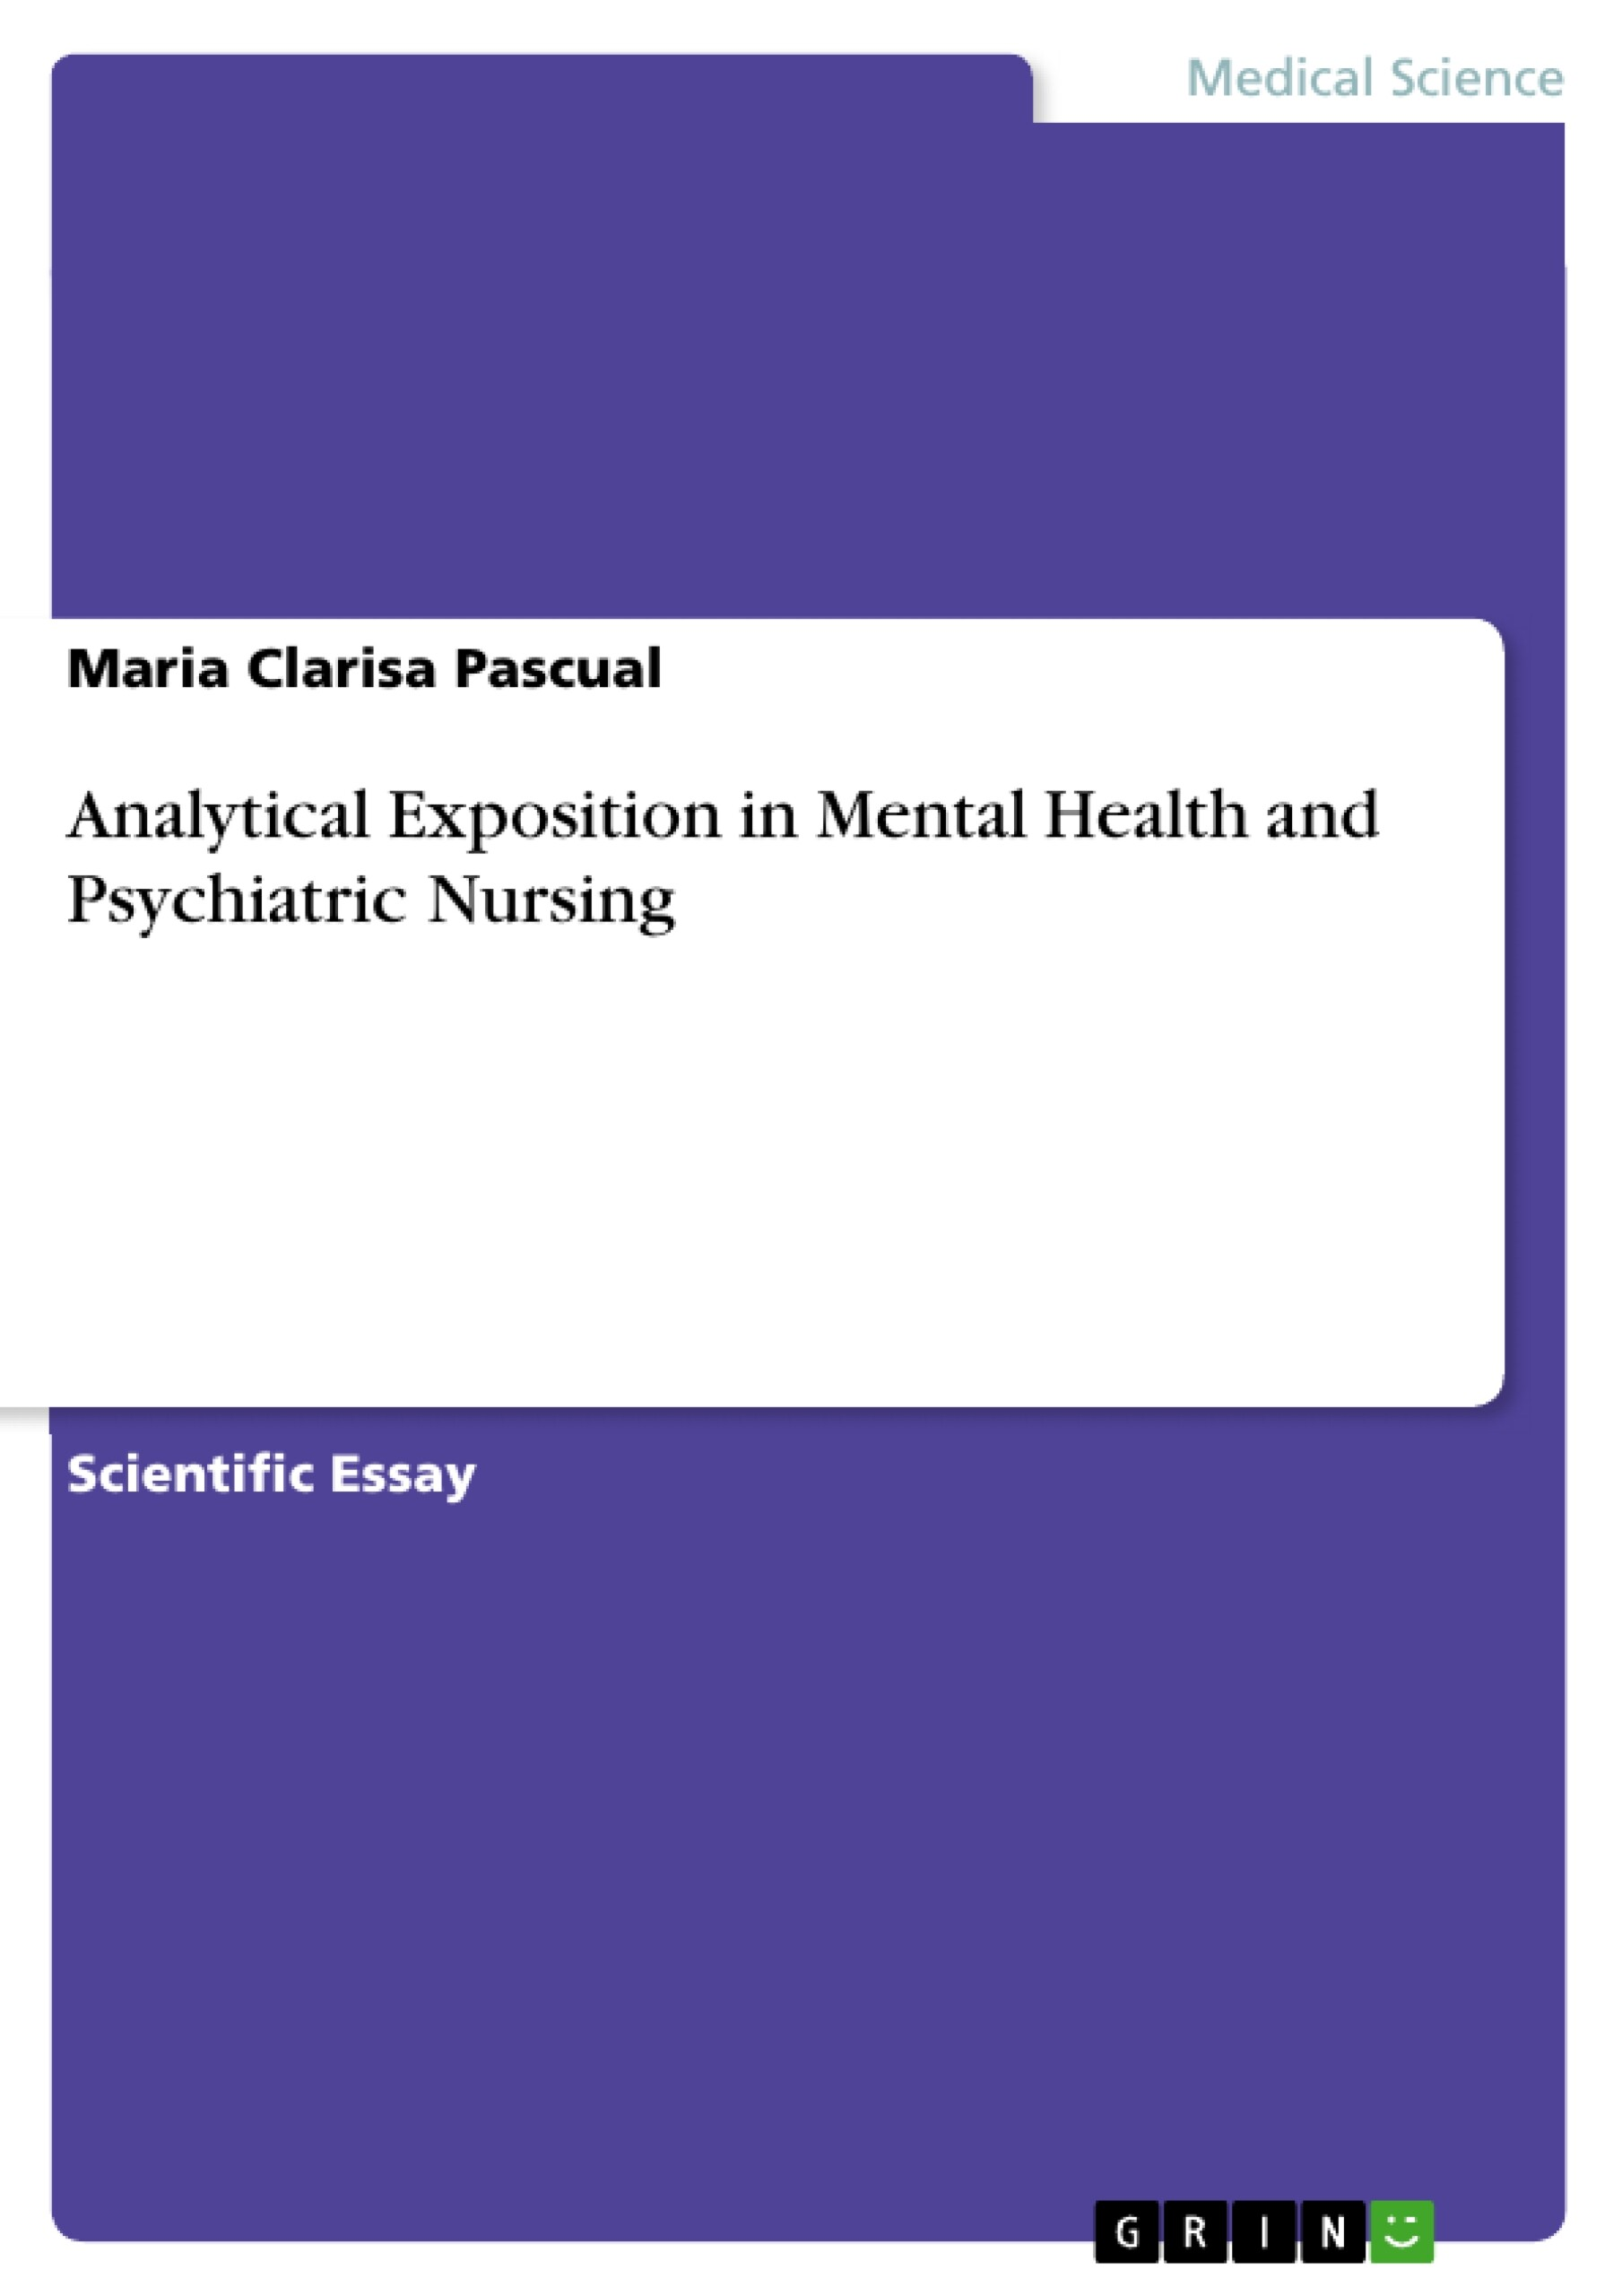 Analytical Exposition in Mental Health and Psychiatric Nursing